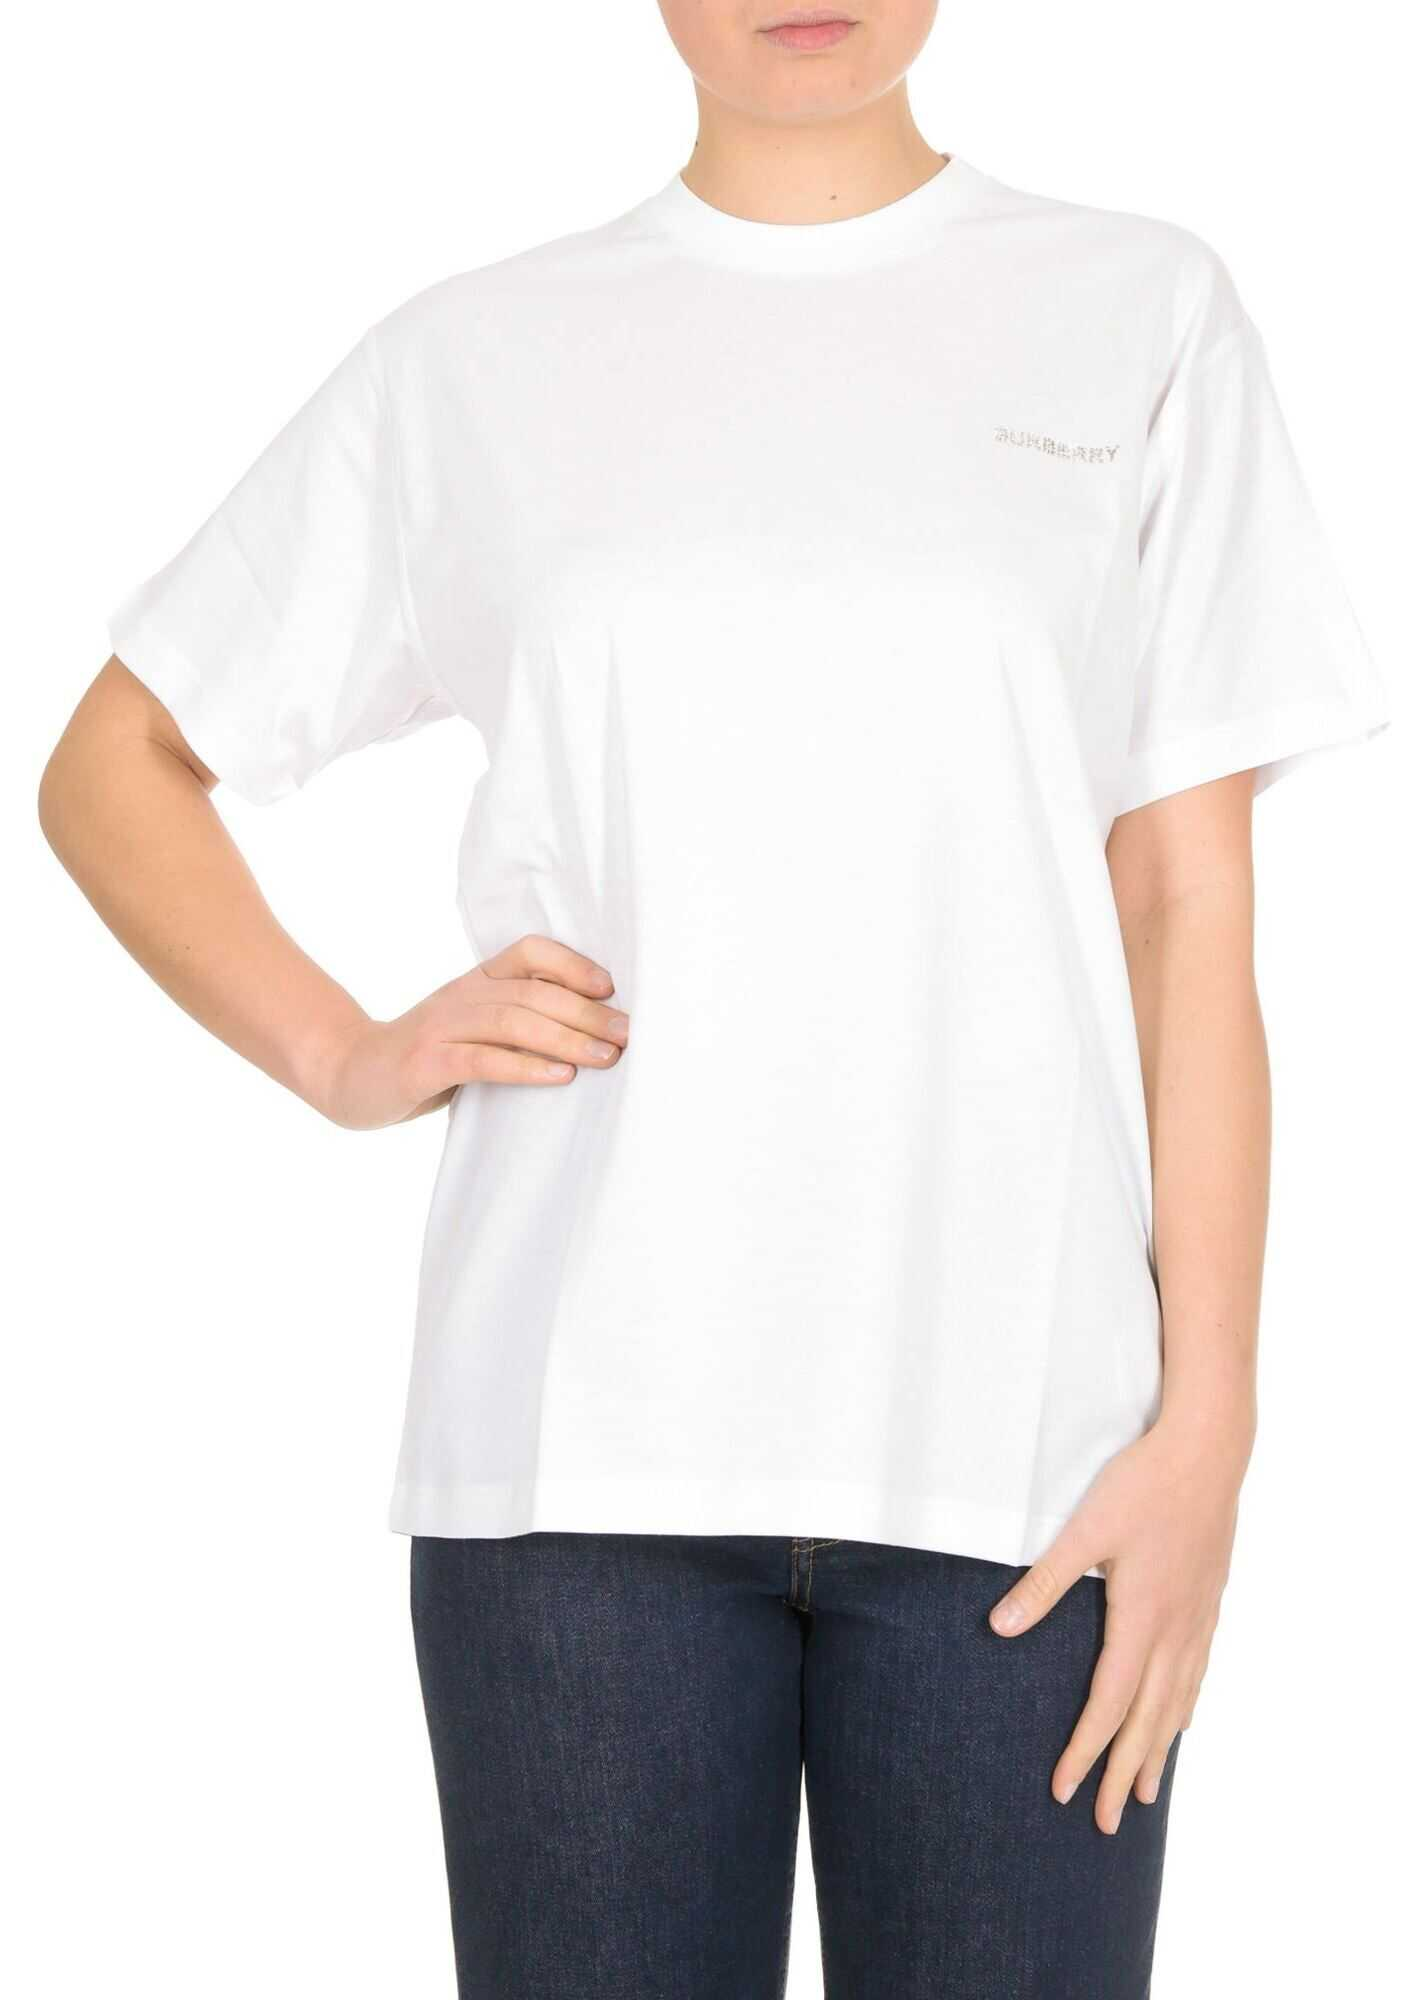 Burberry T-Shirt In White With Crystal Monogram Motif White